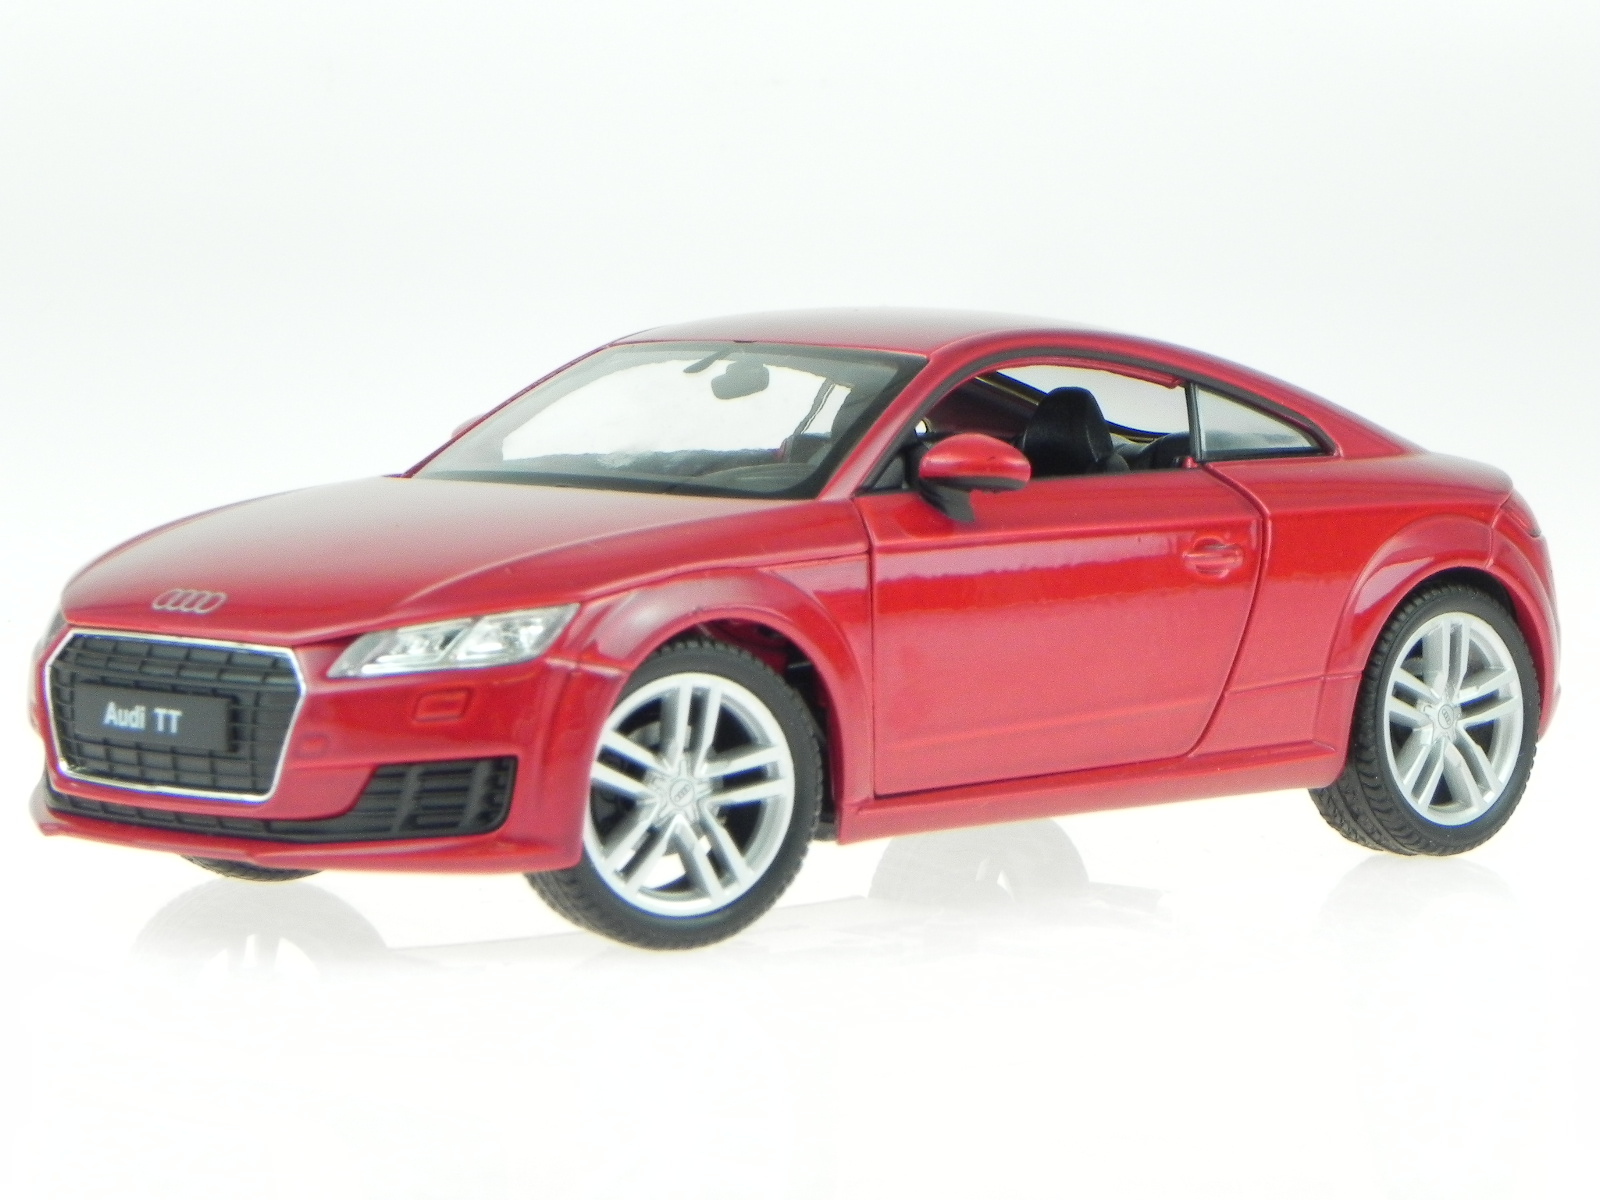 audi tt coupe 2014 rot metallic modellauto 24057 welly 1. Black Bedroom Furniture Sets. Home Design Ideas